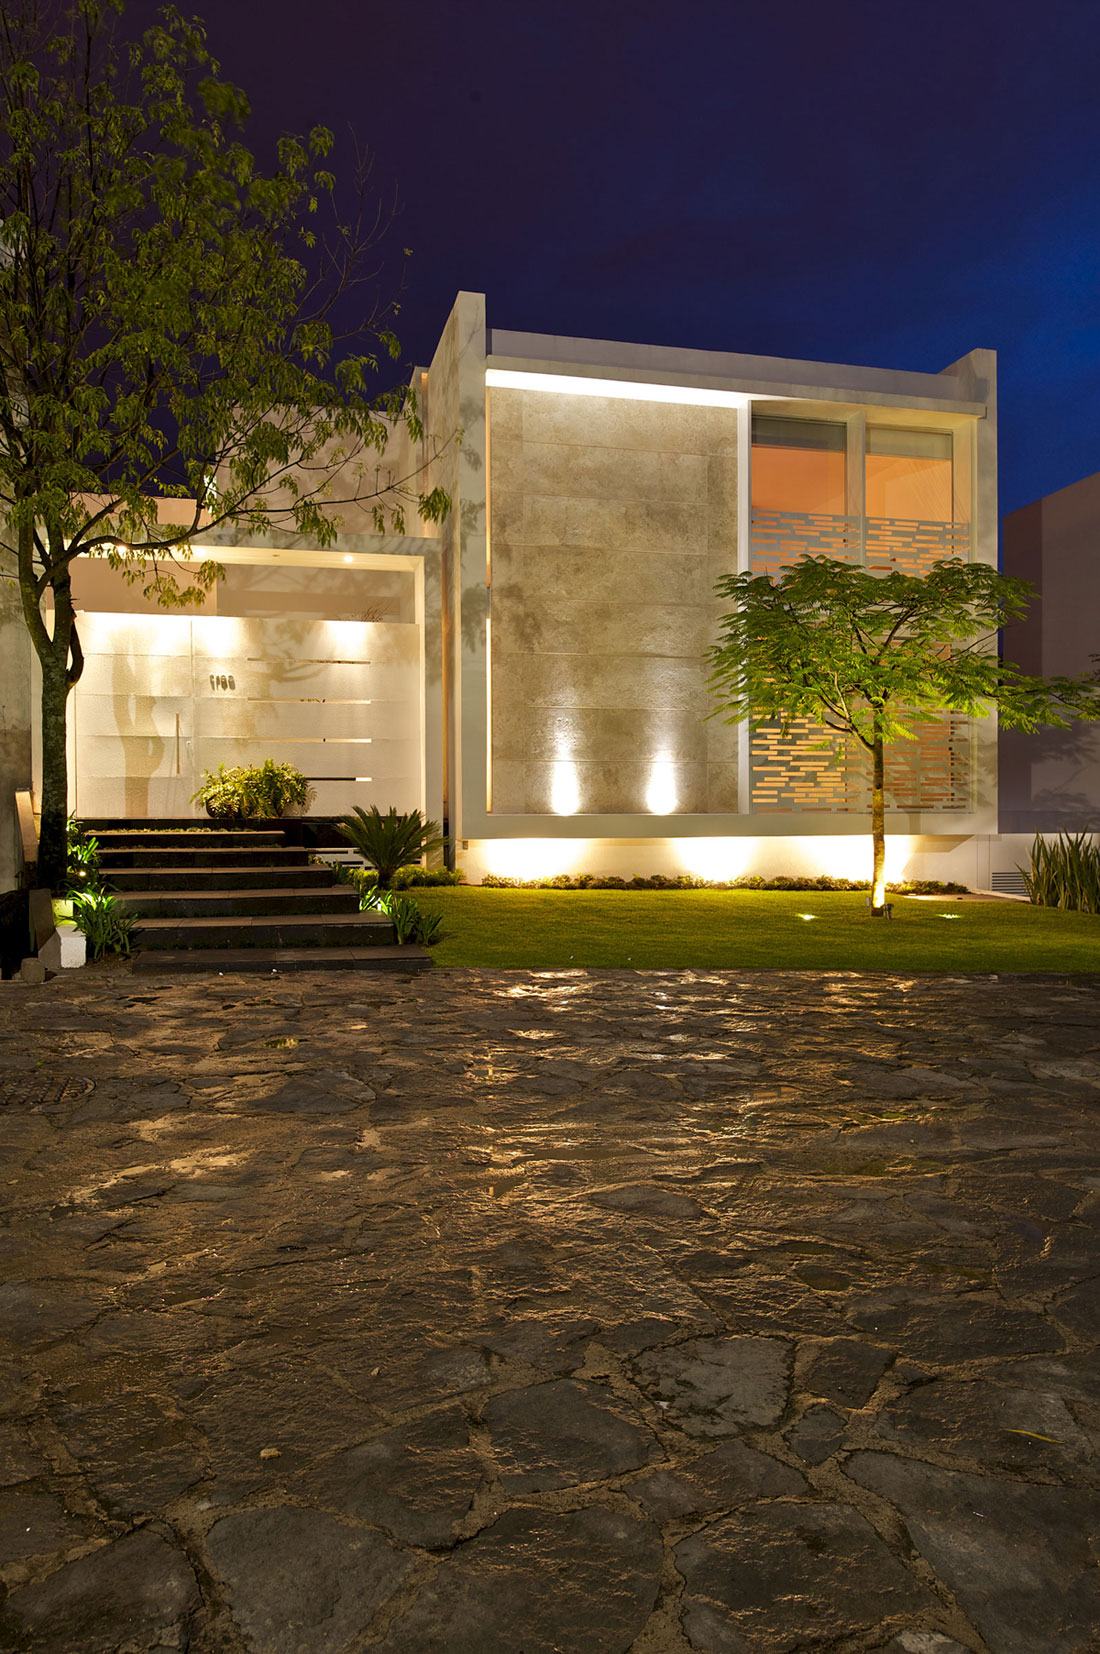 Casa Natalia: Metal and Wood Shutters House in Mexico by Agraz Arquitectos : Night View Front Of Metal And Wood Shutters House